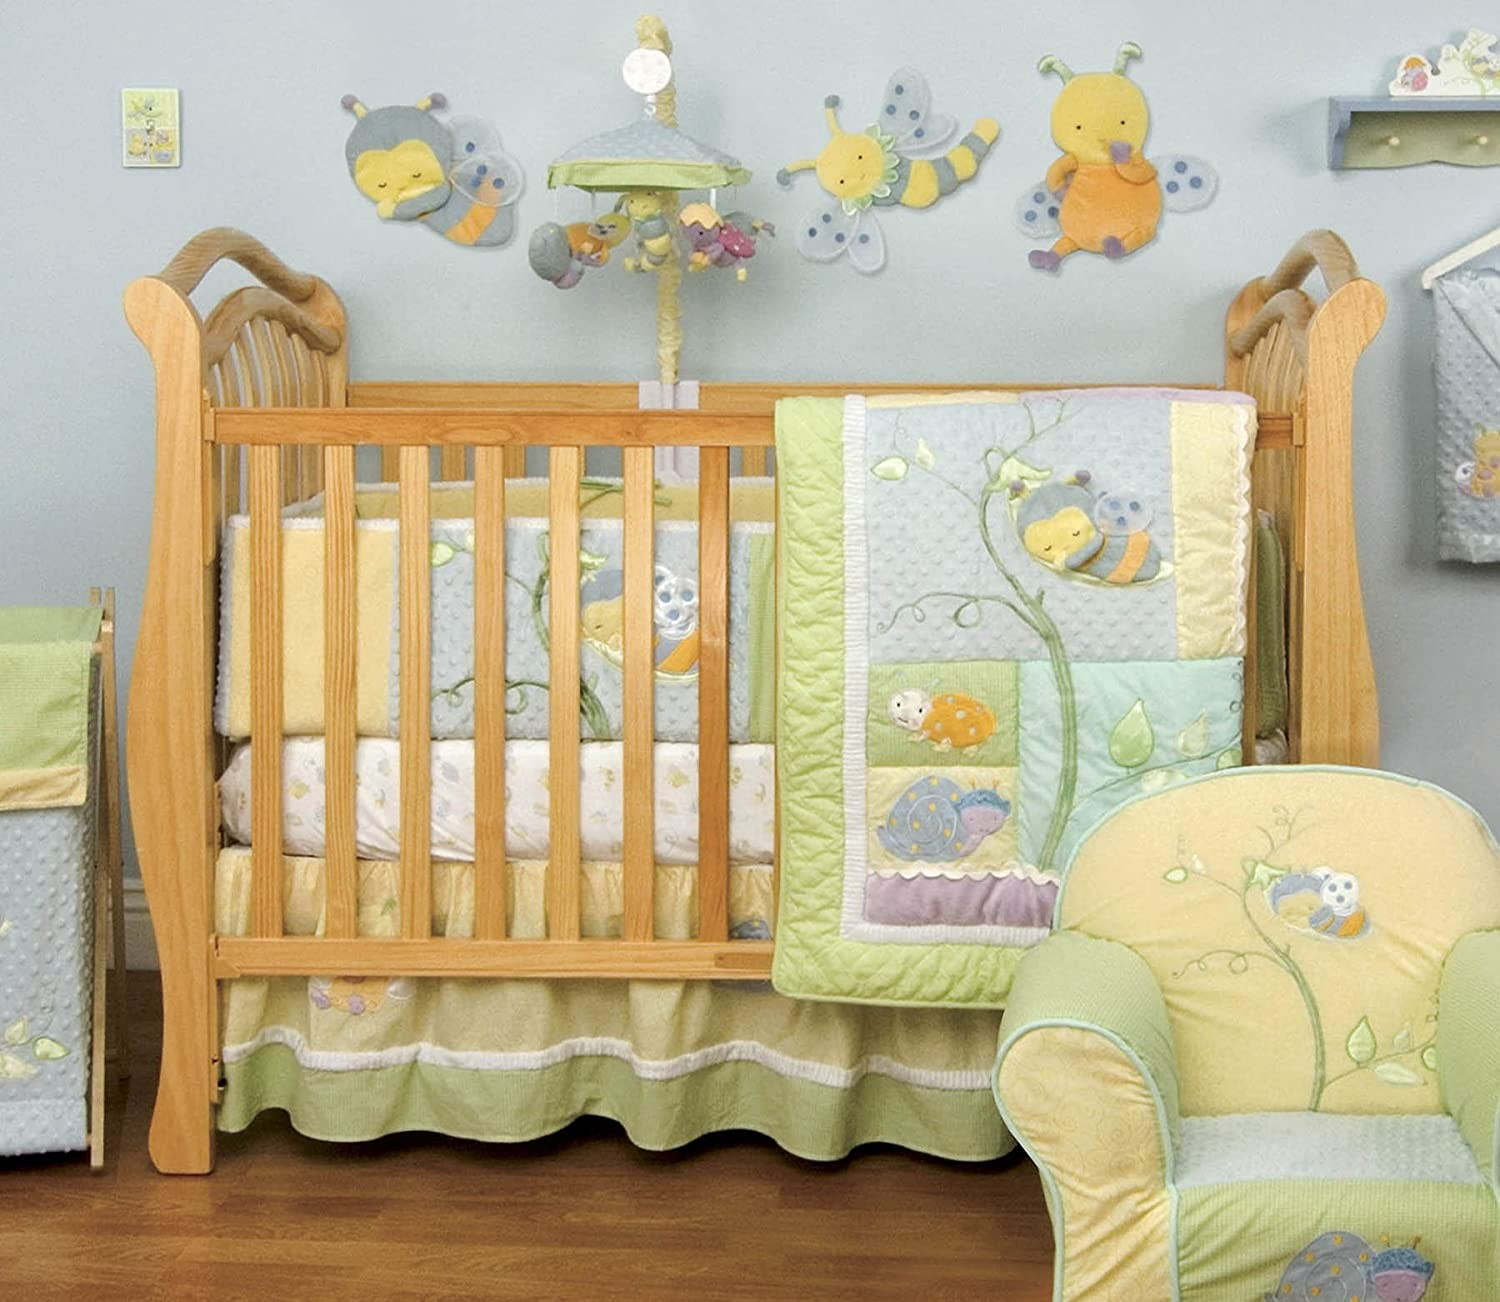 Amazon.com : Kidsline Snug As A Bug 6 Piece Crib Bedding Set ...